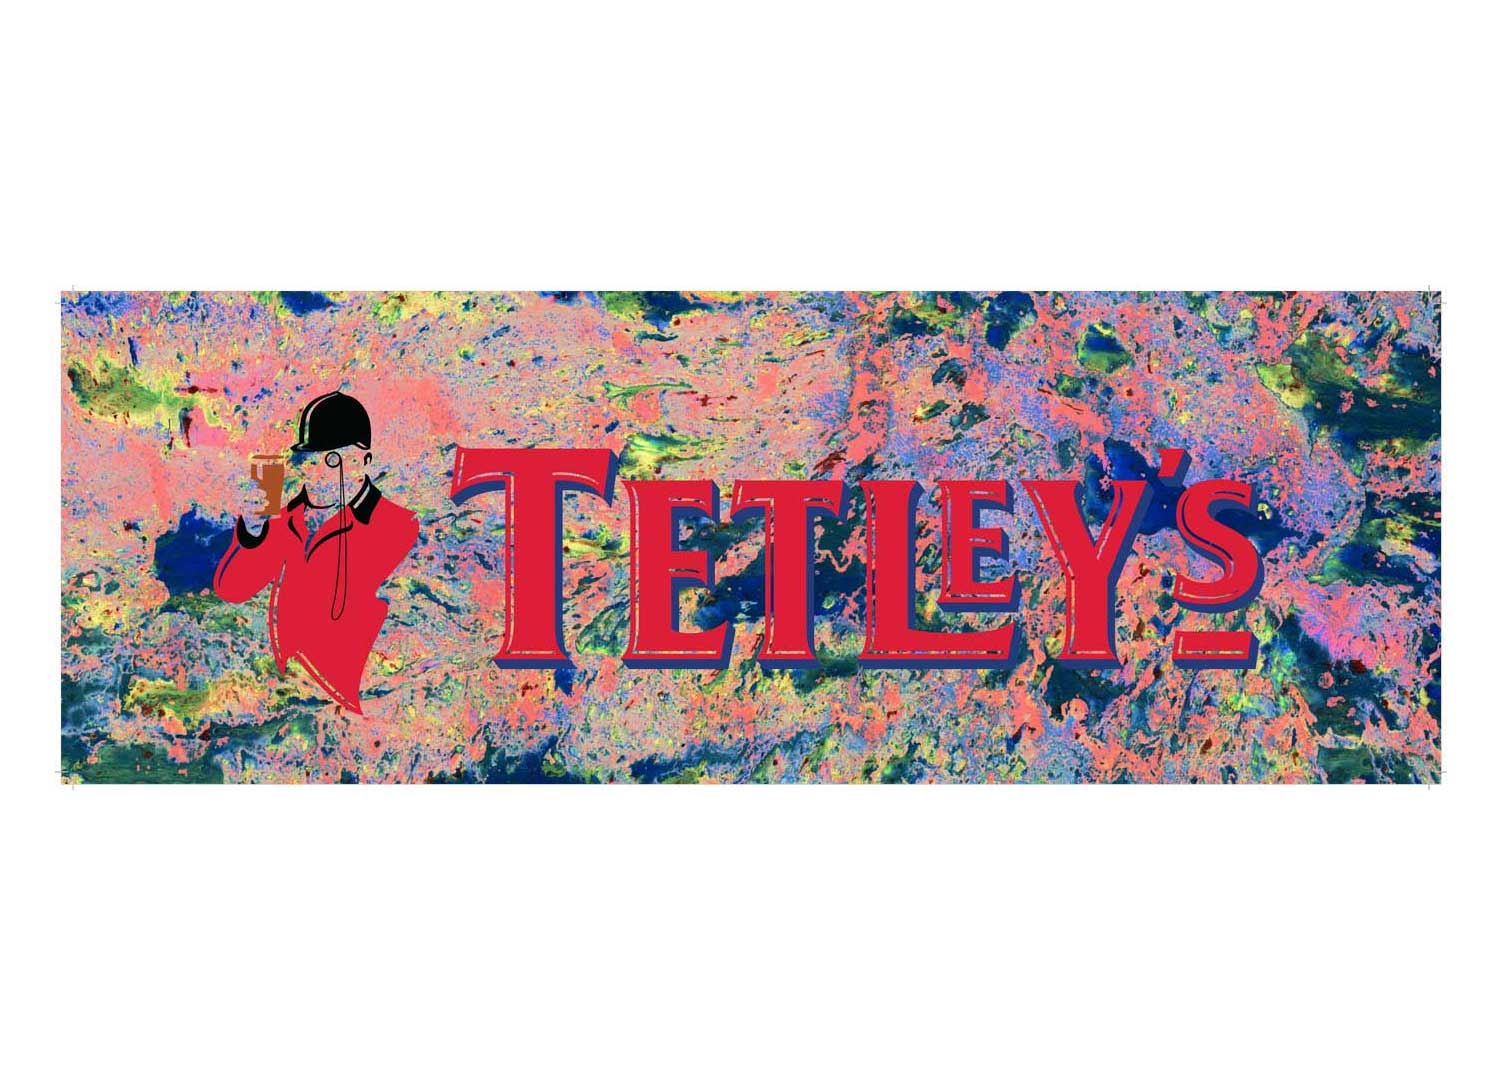 The Tetley's 2015 Artist's Commission